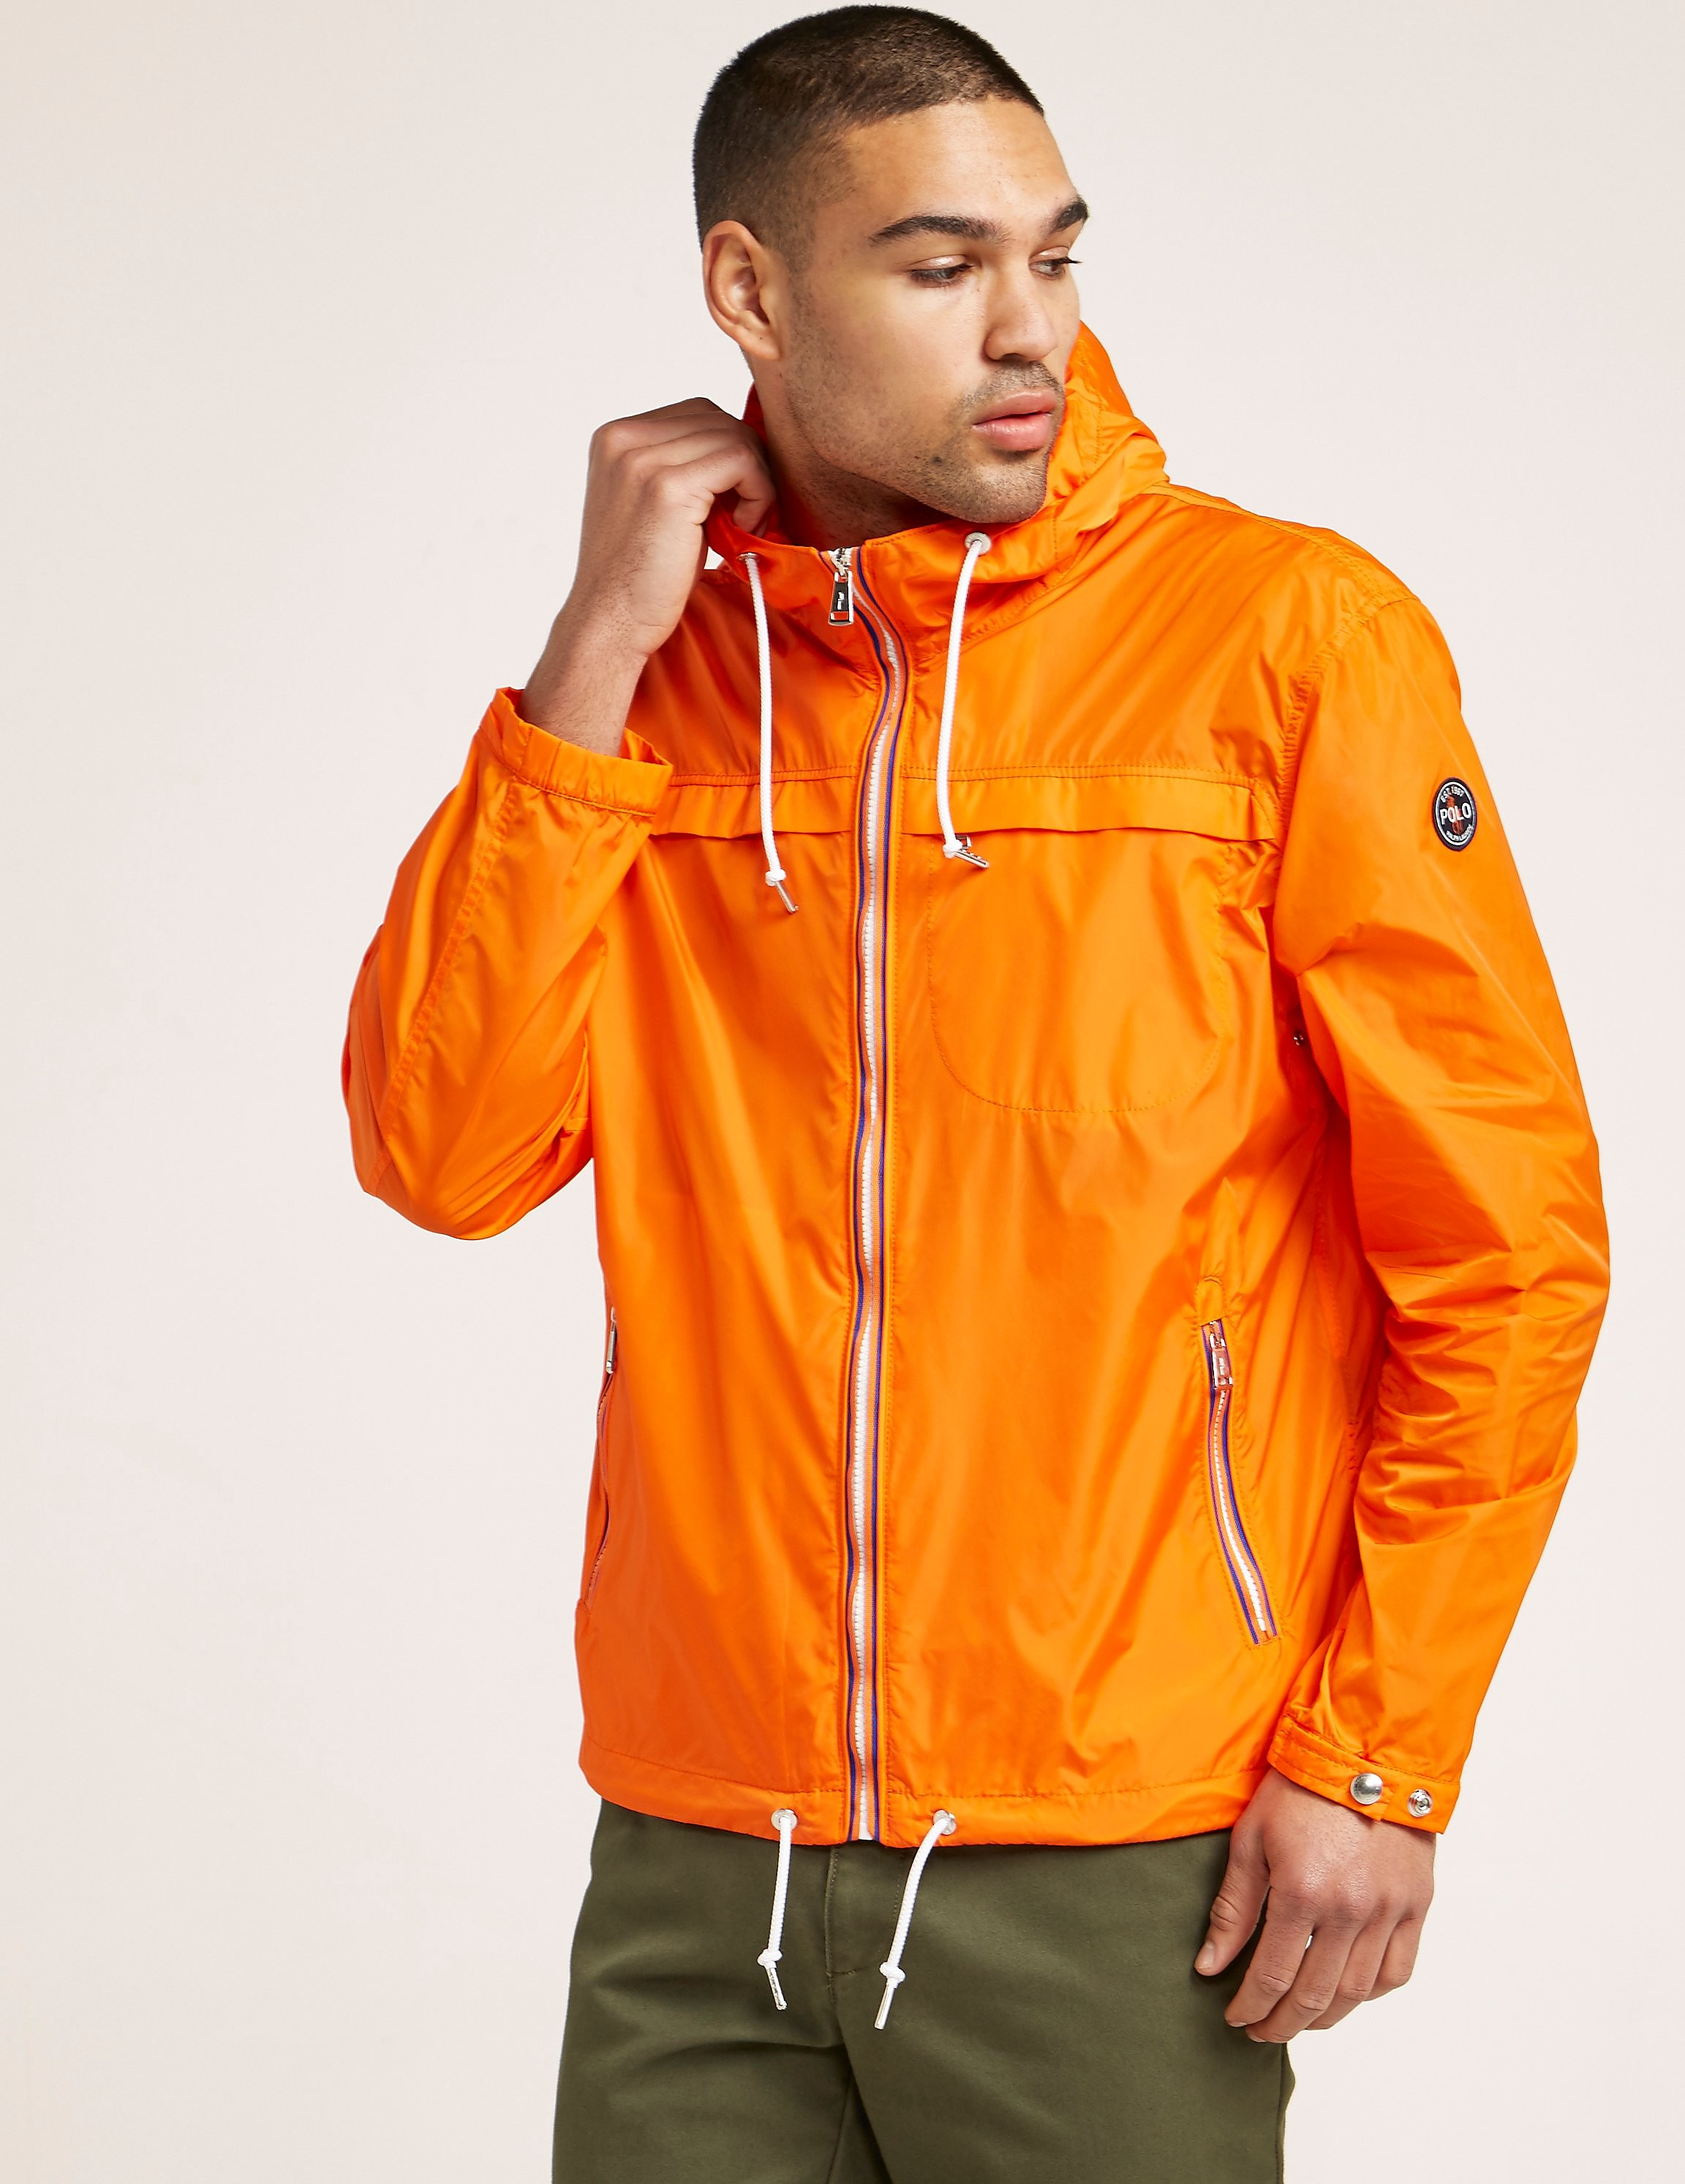 Polo Ralph Lauren Packable Light Jacket